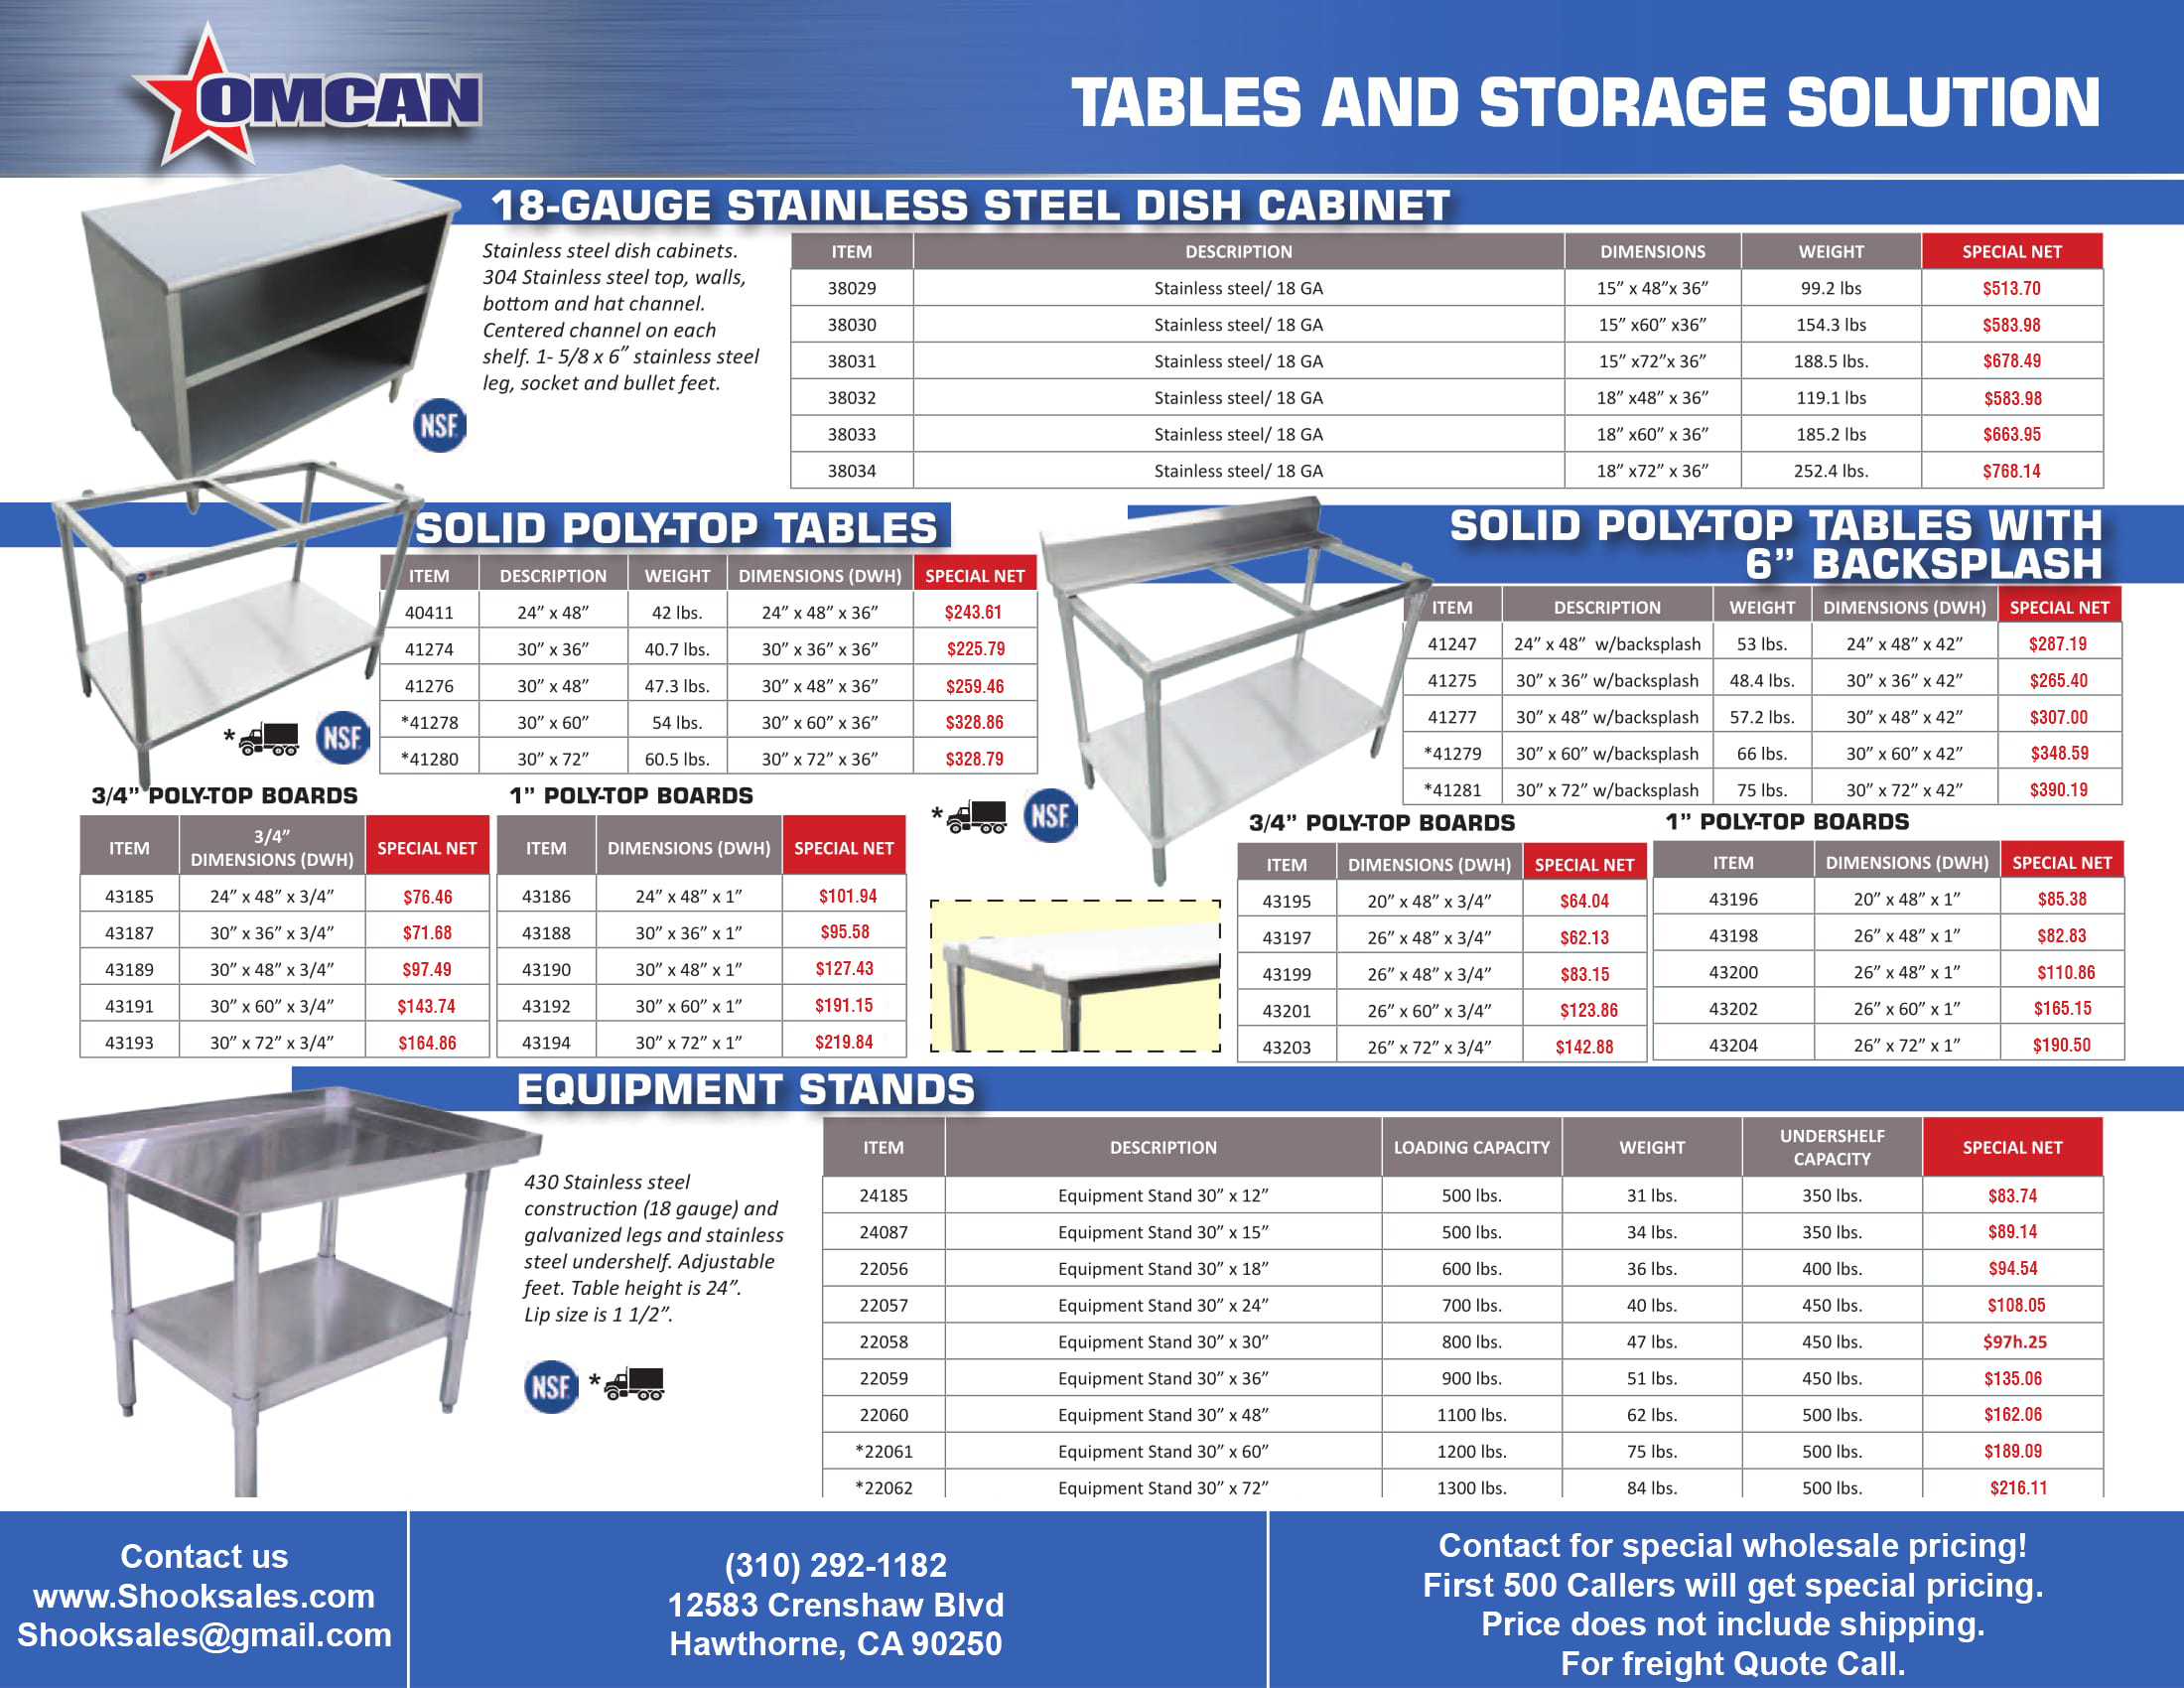 Promo flyers shookrestaurantequipment steam table pans 1 sinks and tables 1 sinks and tables 2 work tables with cabinets tables and storage units greentooth Image collections